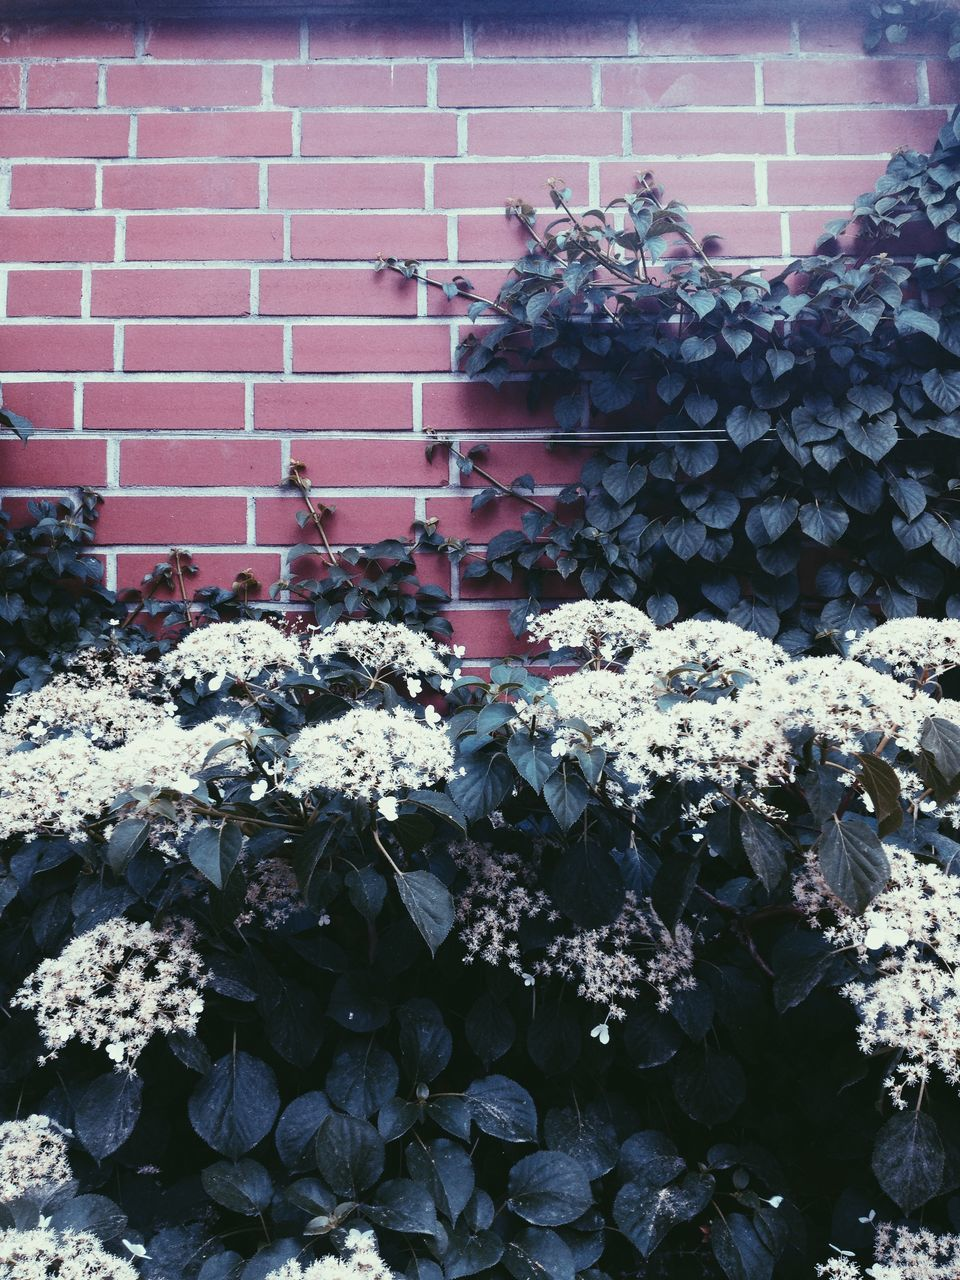 outdoors, flower, day, growth, brick wall, architecture, building exterior, built structure, nature, no people, abundance, hydrangea, plant, beauty in nature, fragility, blooming, freshness, flower head, close-up